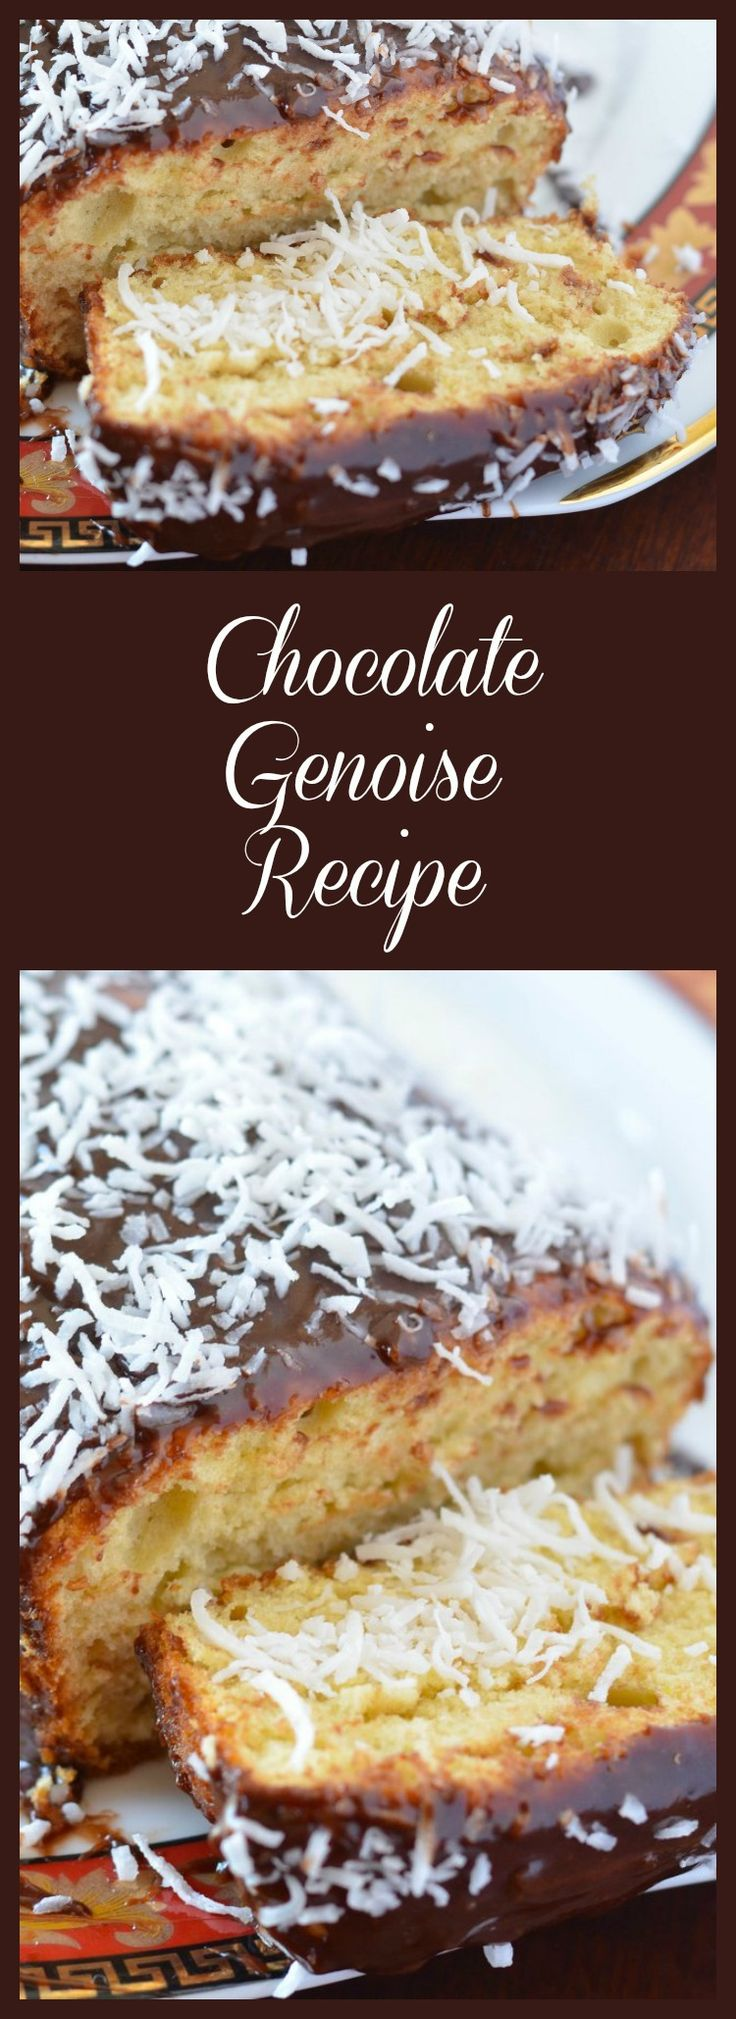 Have you ever made a chocolate genoise recipe before? If not, you're in for a treat with this chocolate cake made without butter!